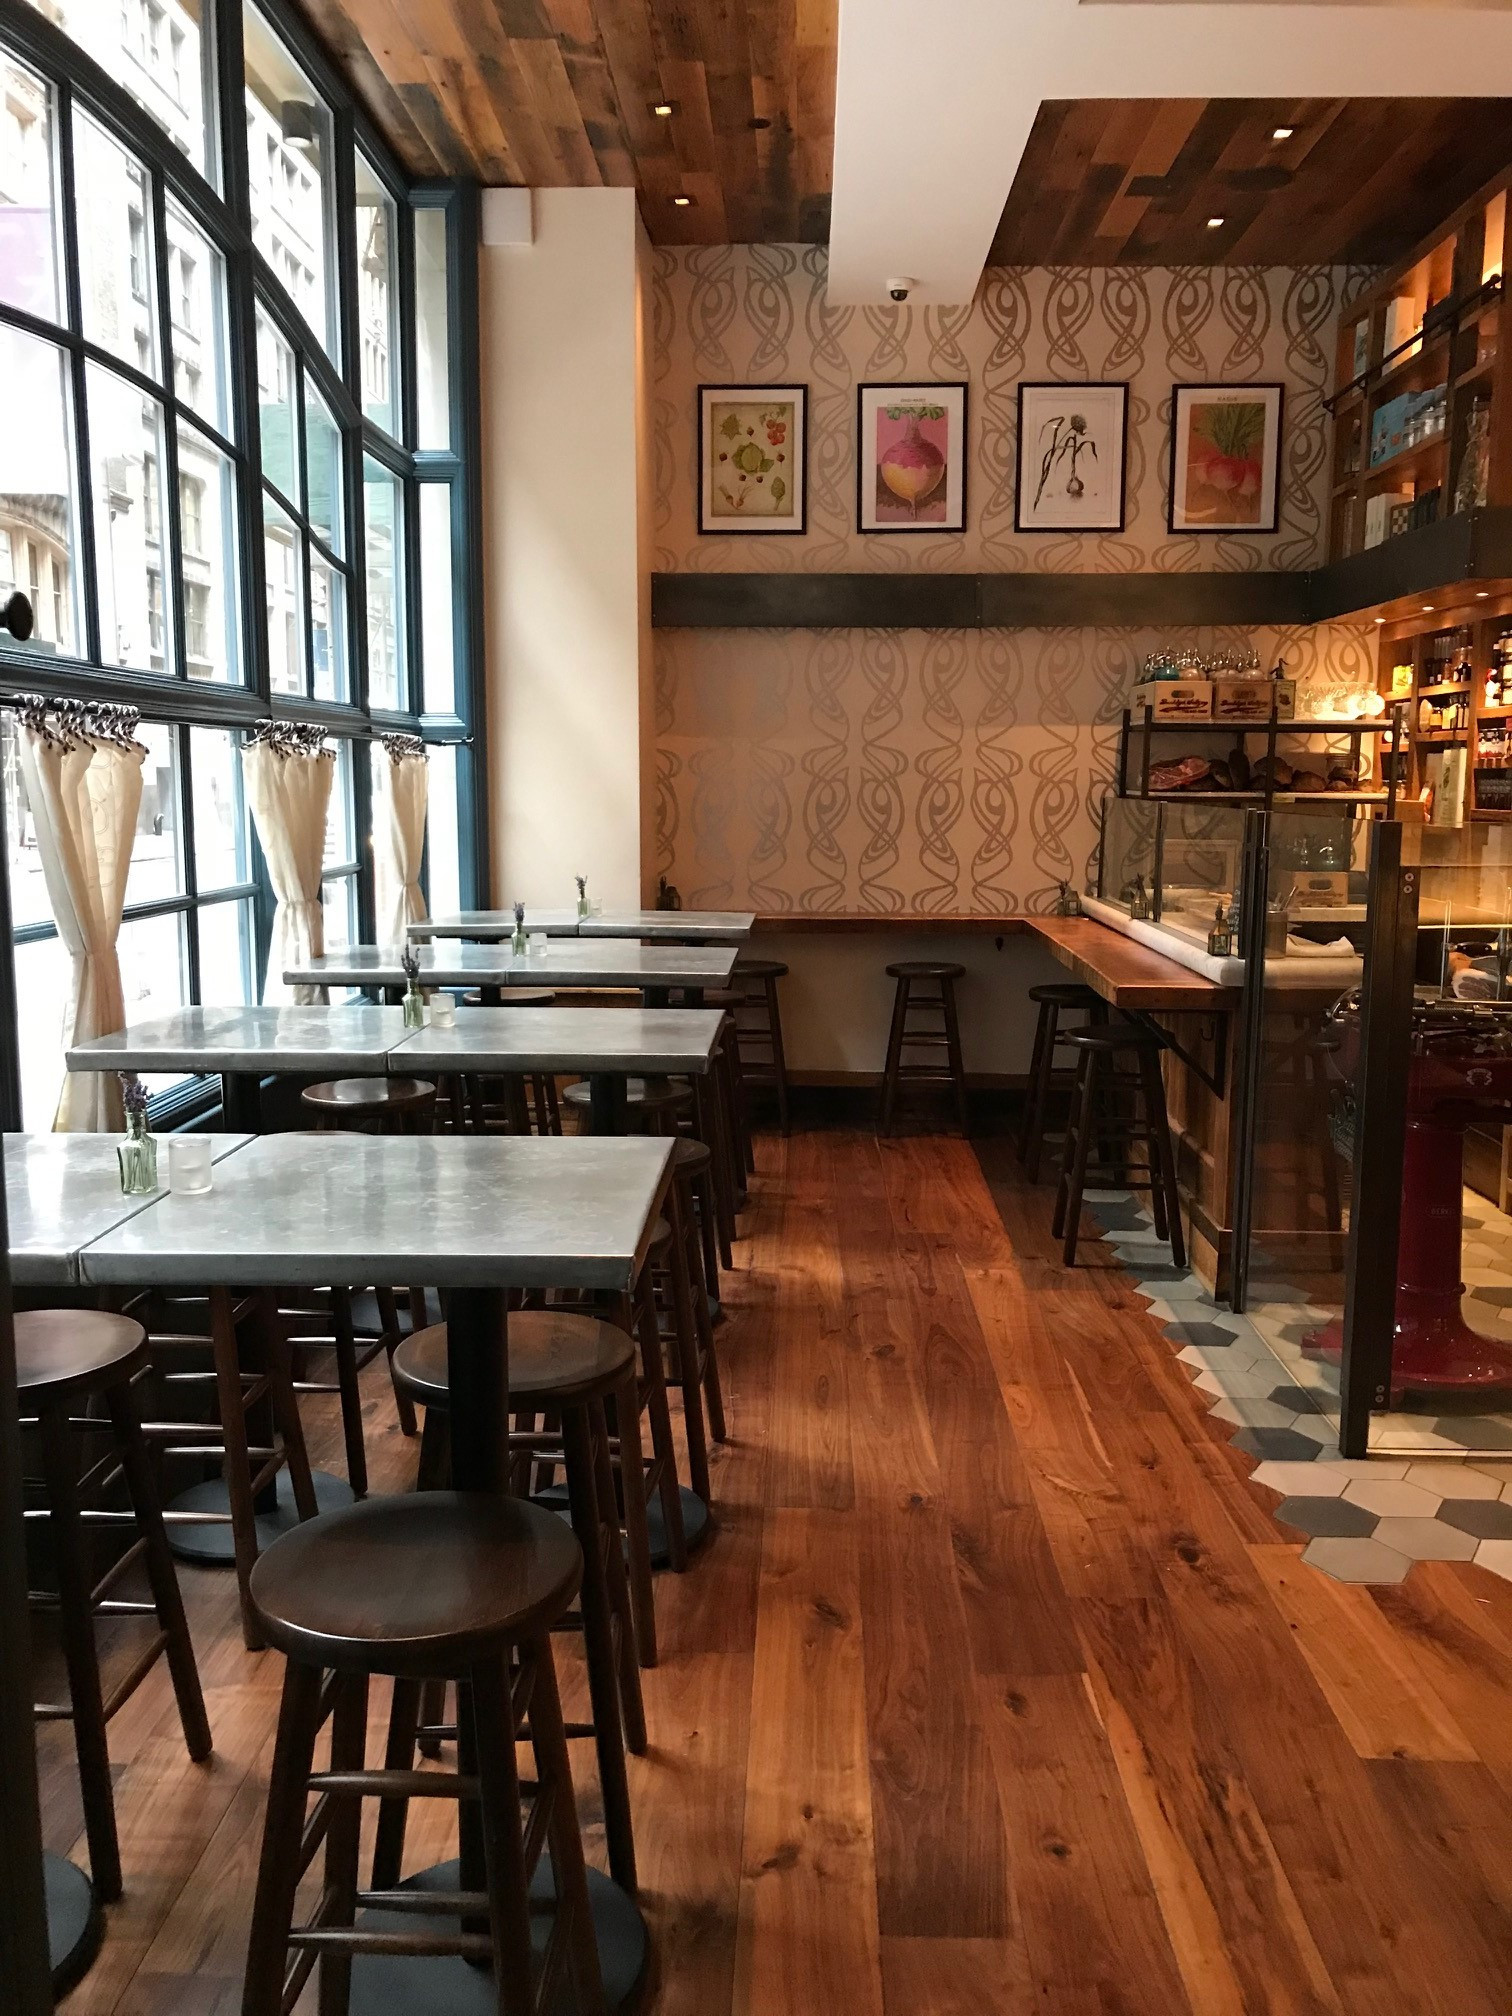 Hardwood Flooring Wayne Nj Of Search Plan and Book Your Private event In New York City Nyc Ny Pertaining to Trattoria Italienne event Space In New York City Nyc Ny Nj area